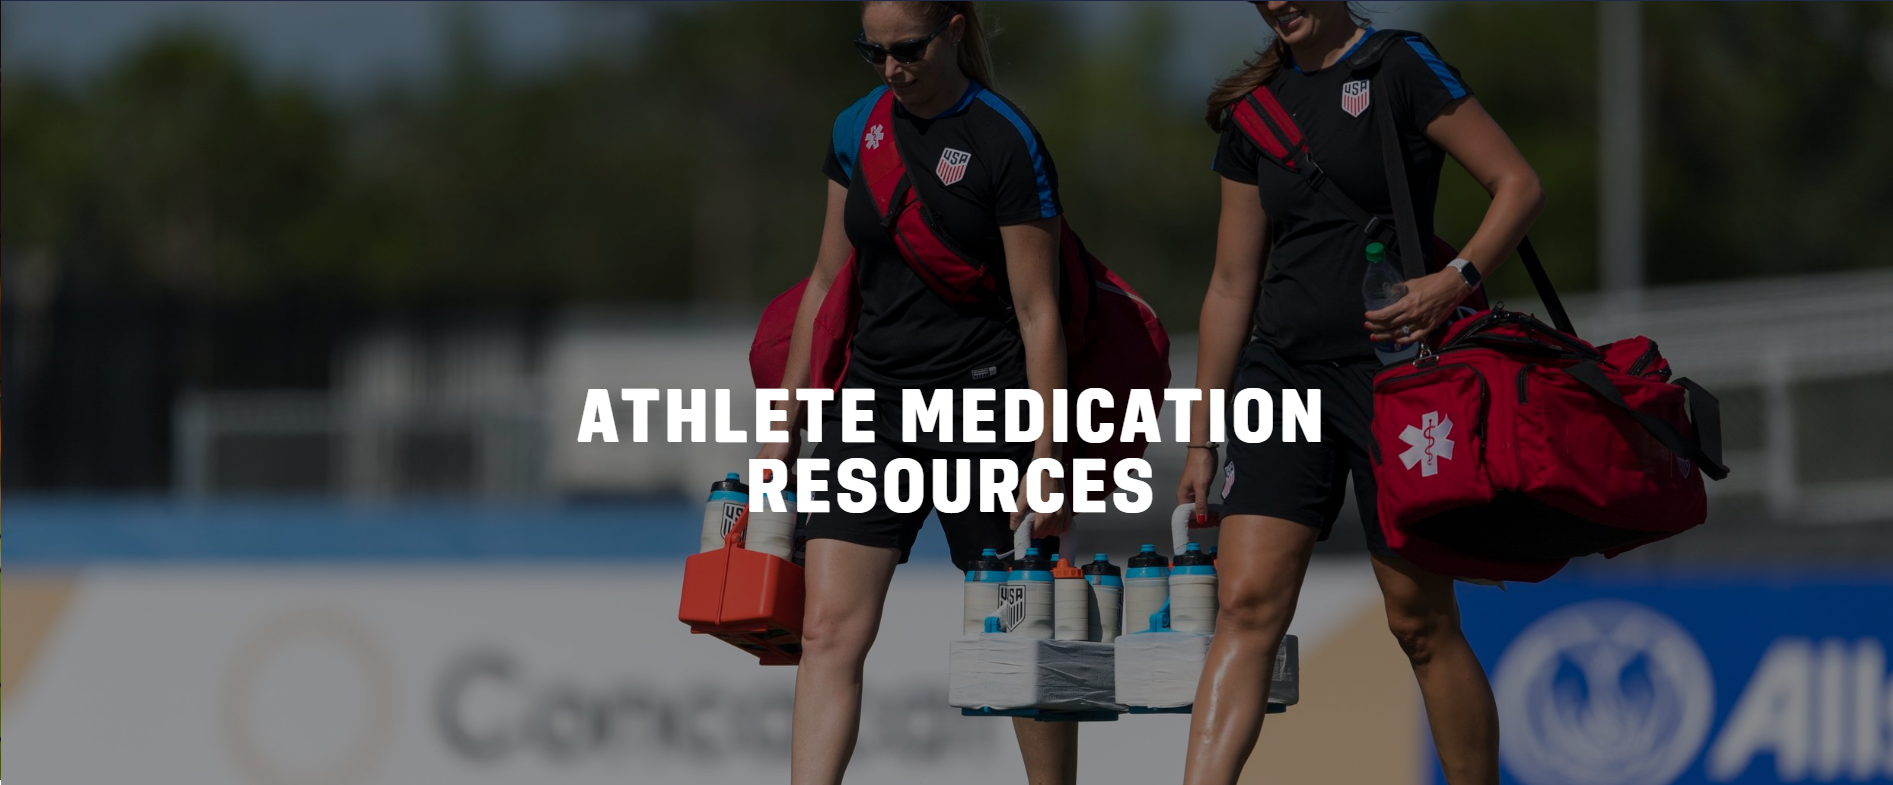 Athlete_Medication_Resources